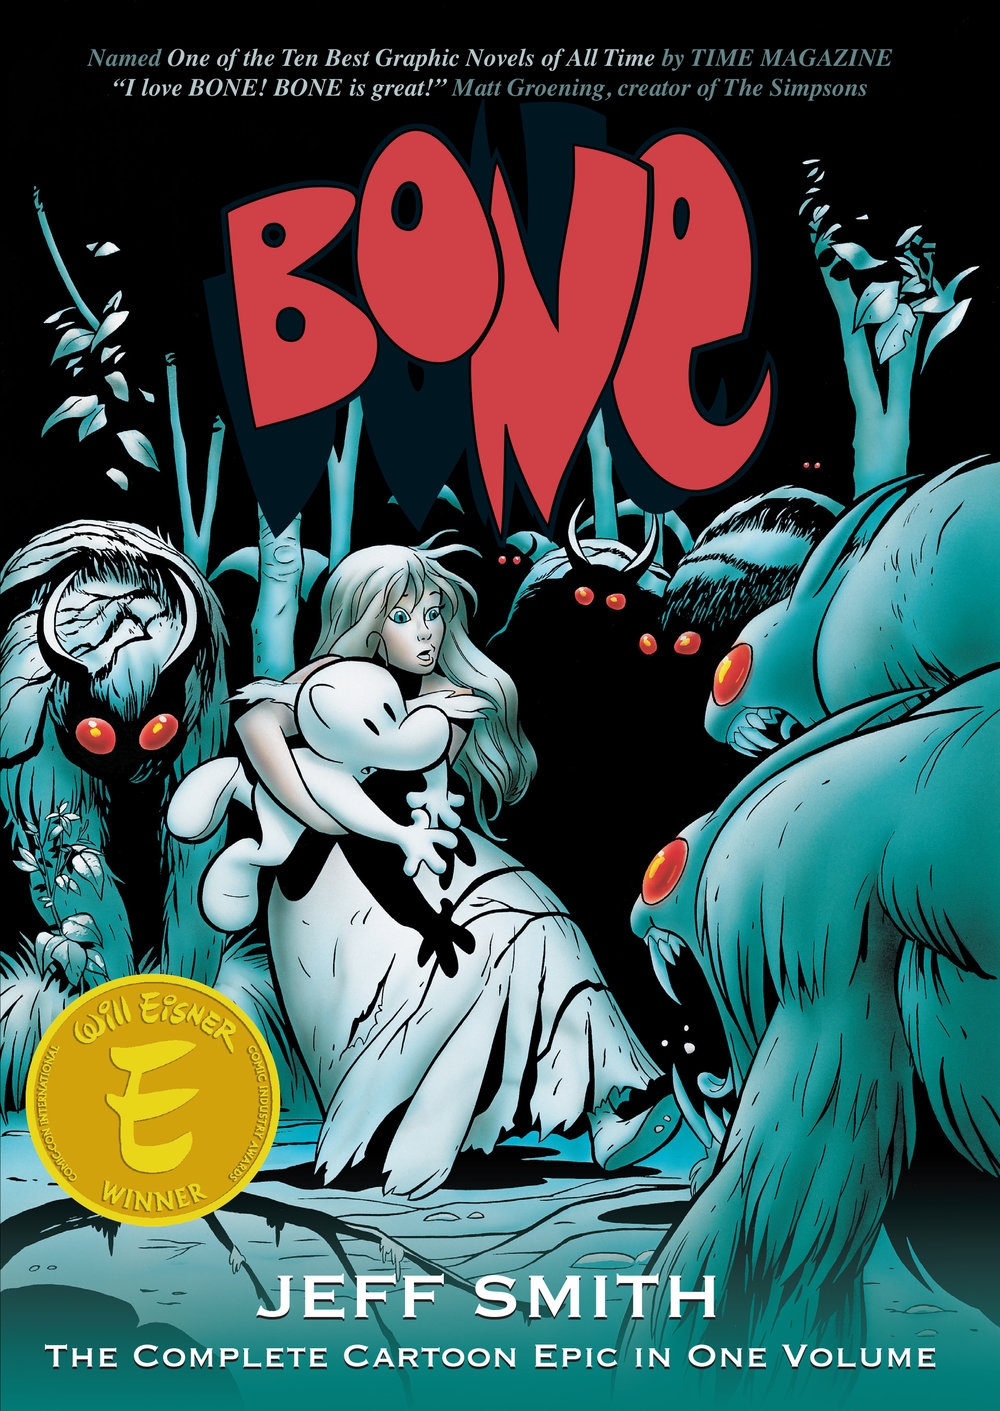 BONE One Vol Edtn 20th Cover FINAL.jpg